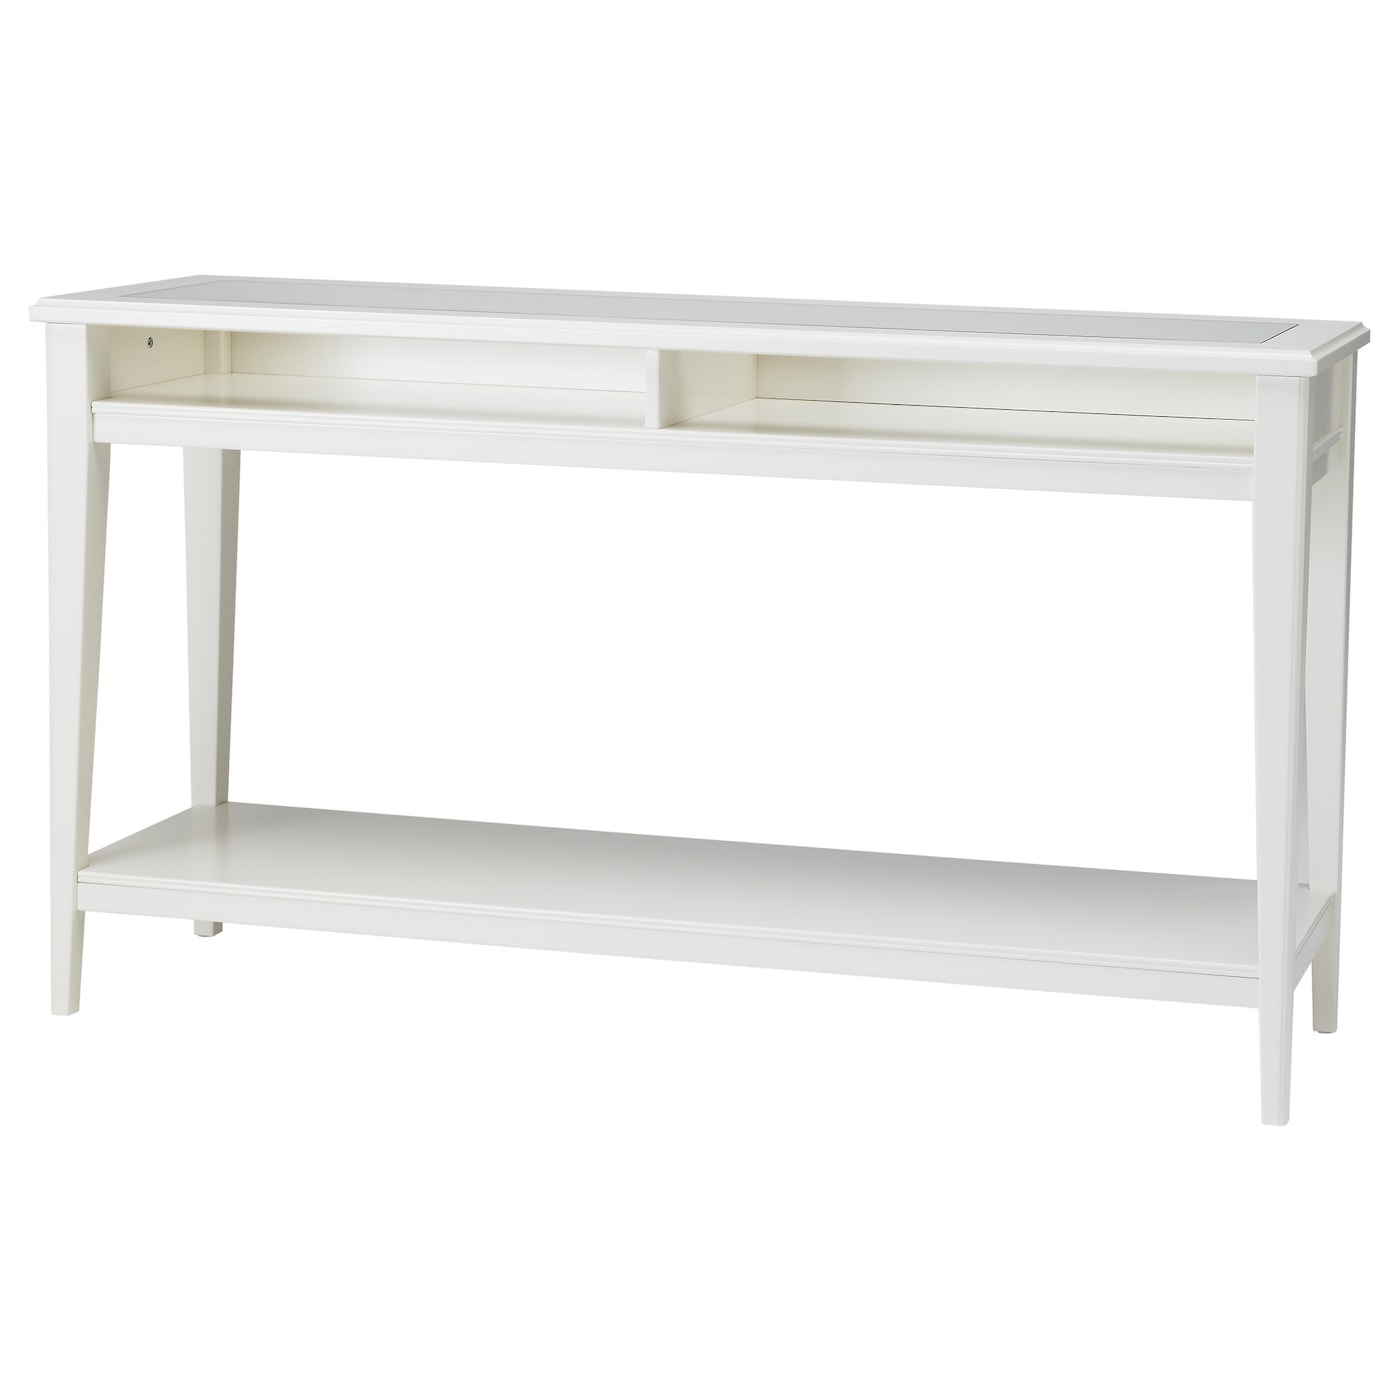 Liatorp console table white glass 133 x 37 cm ikea for Ikea hall table